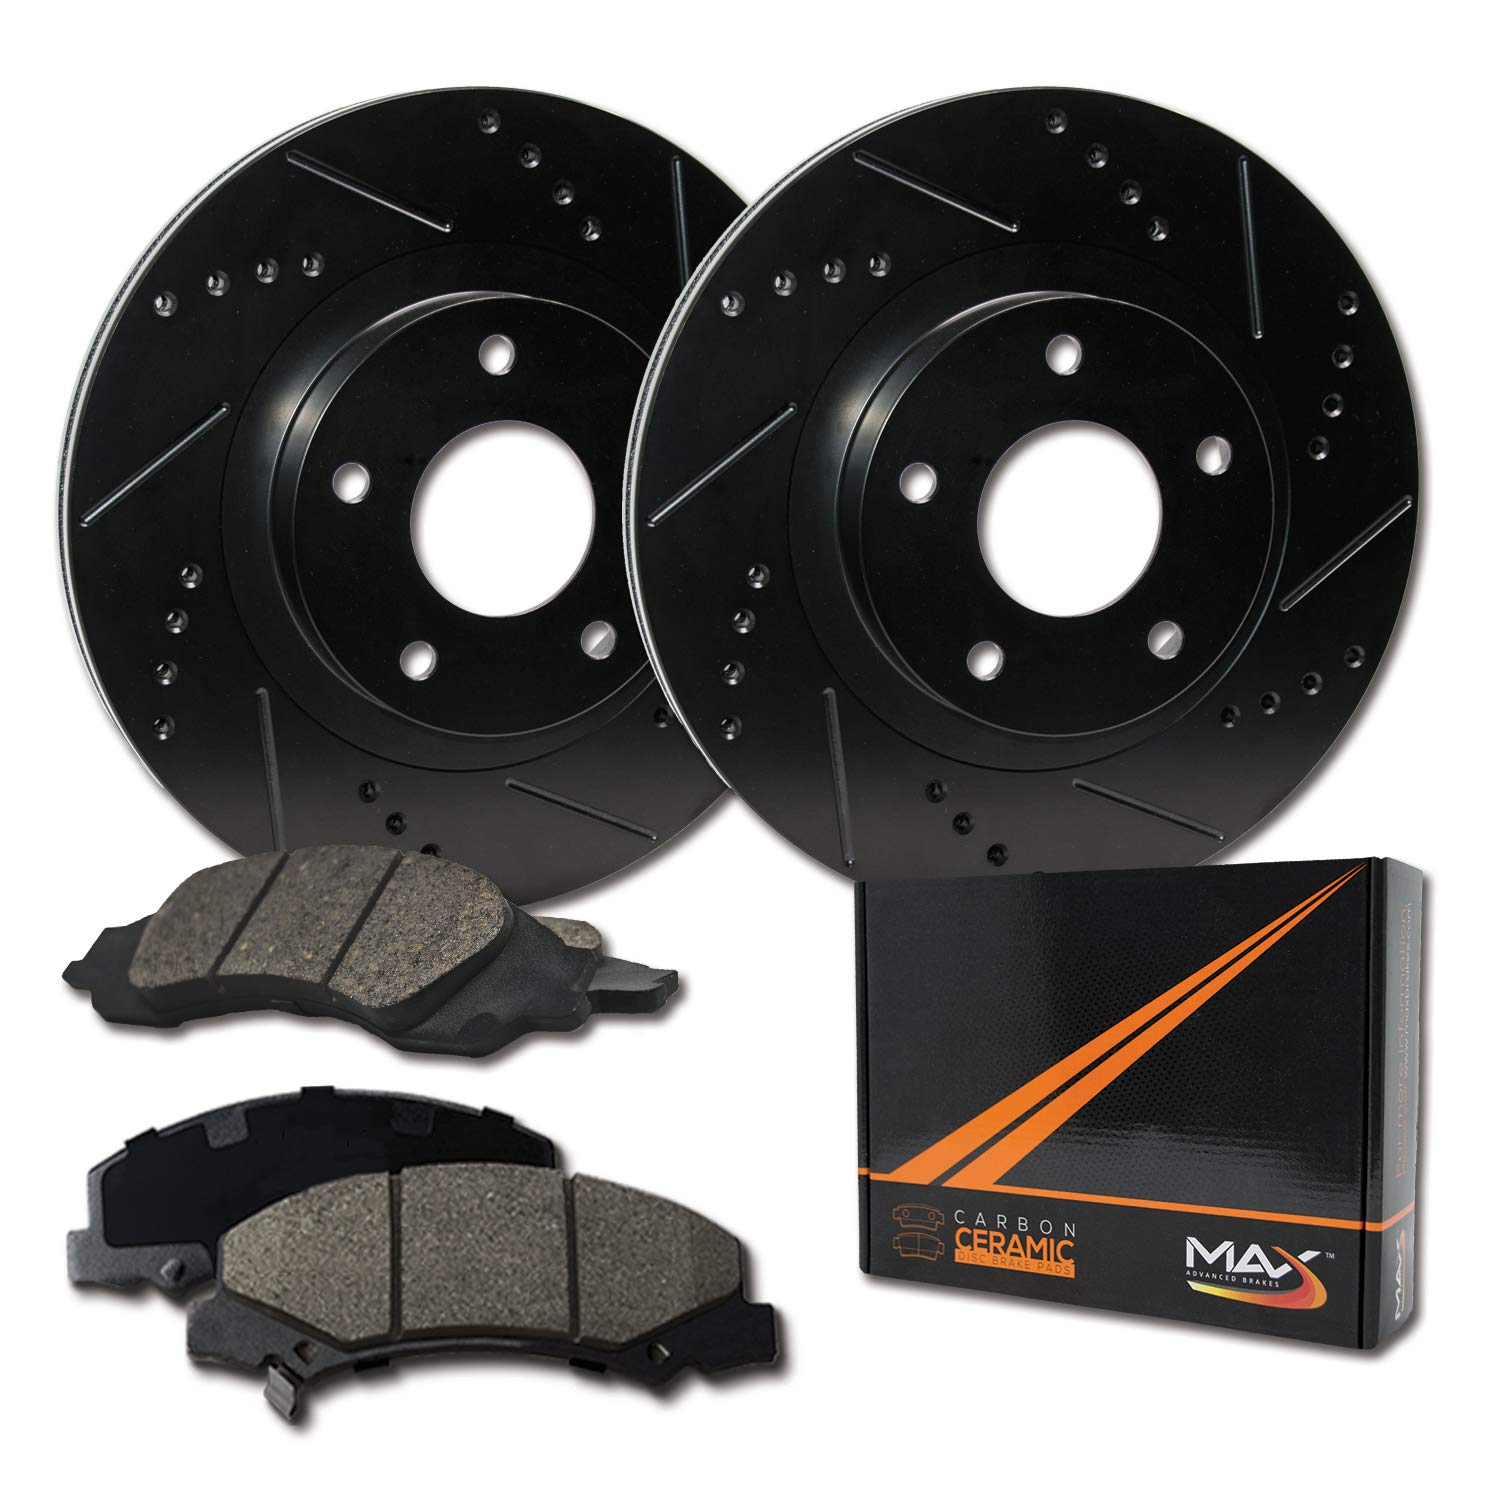 Max Brakes Front Elite Brake Kit [ E-Coated Slotted Drilled Rotors + Ceramic Pads ] KT015381 Fits: 2007-2015 Escalade Tahoe Silverado Suburban 1500 | 2009-2013 Avalanche & Express 1500